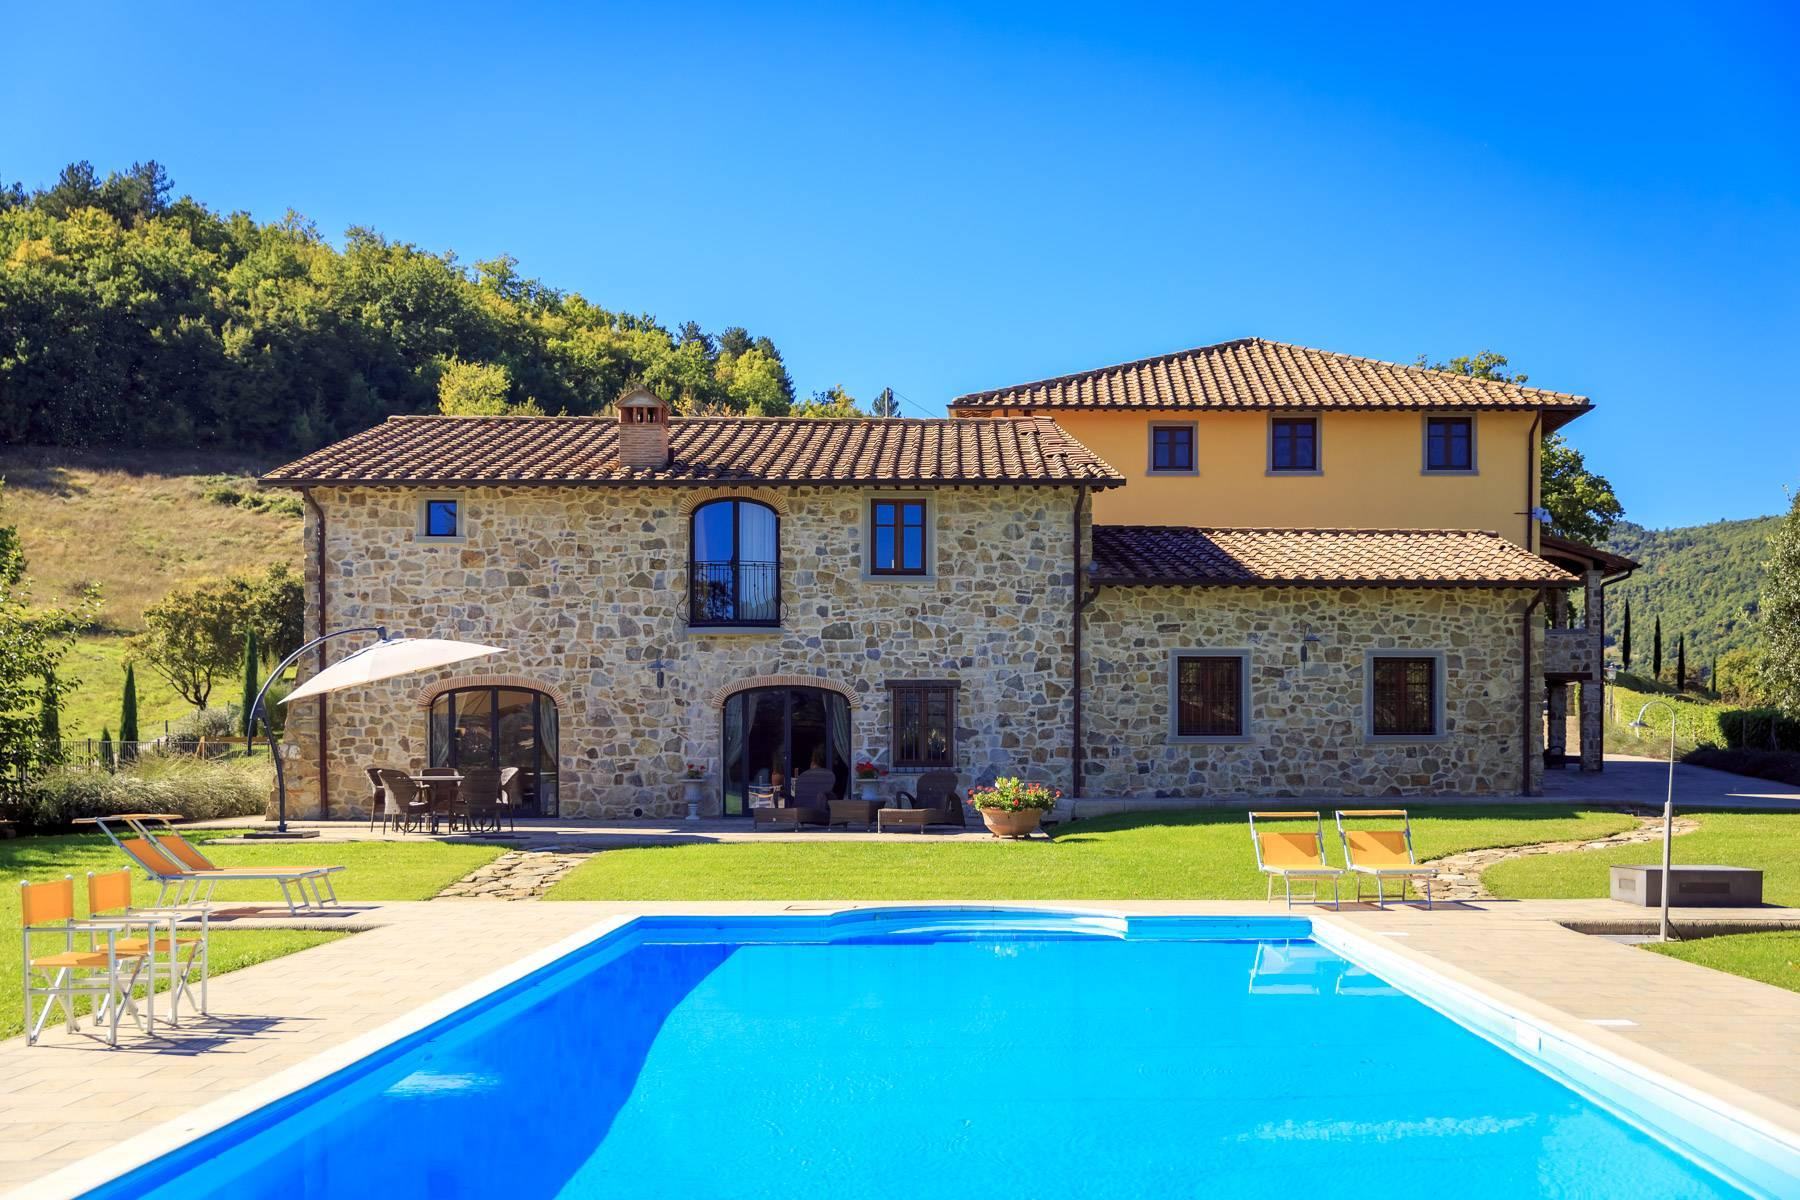 Marvelous estate with views over the Casentino valley - 1